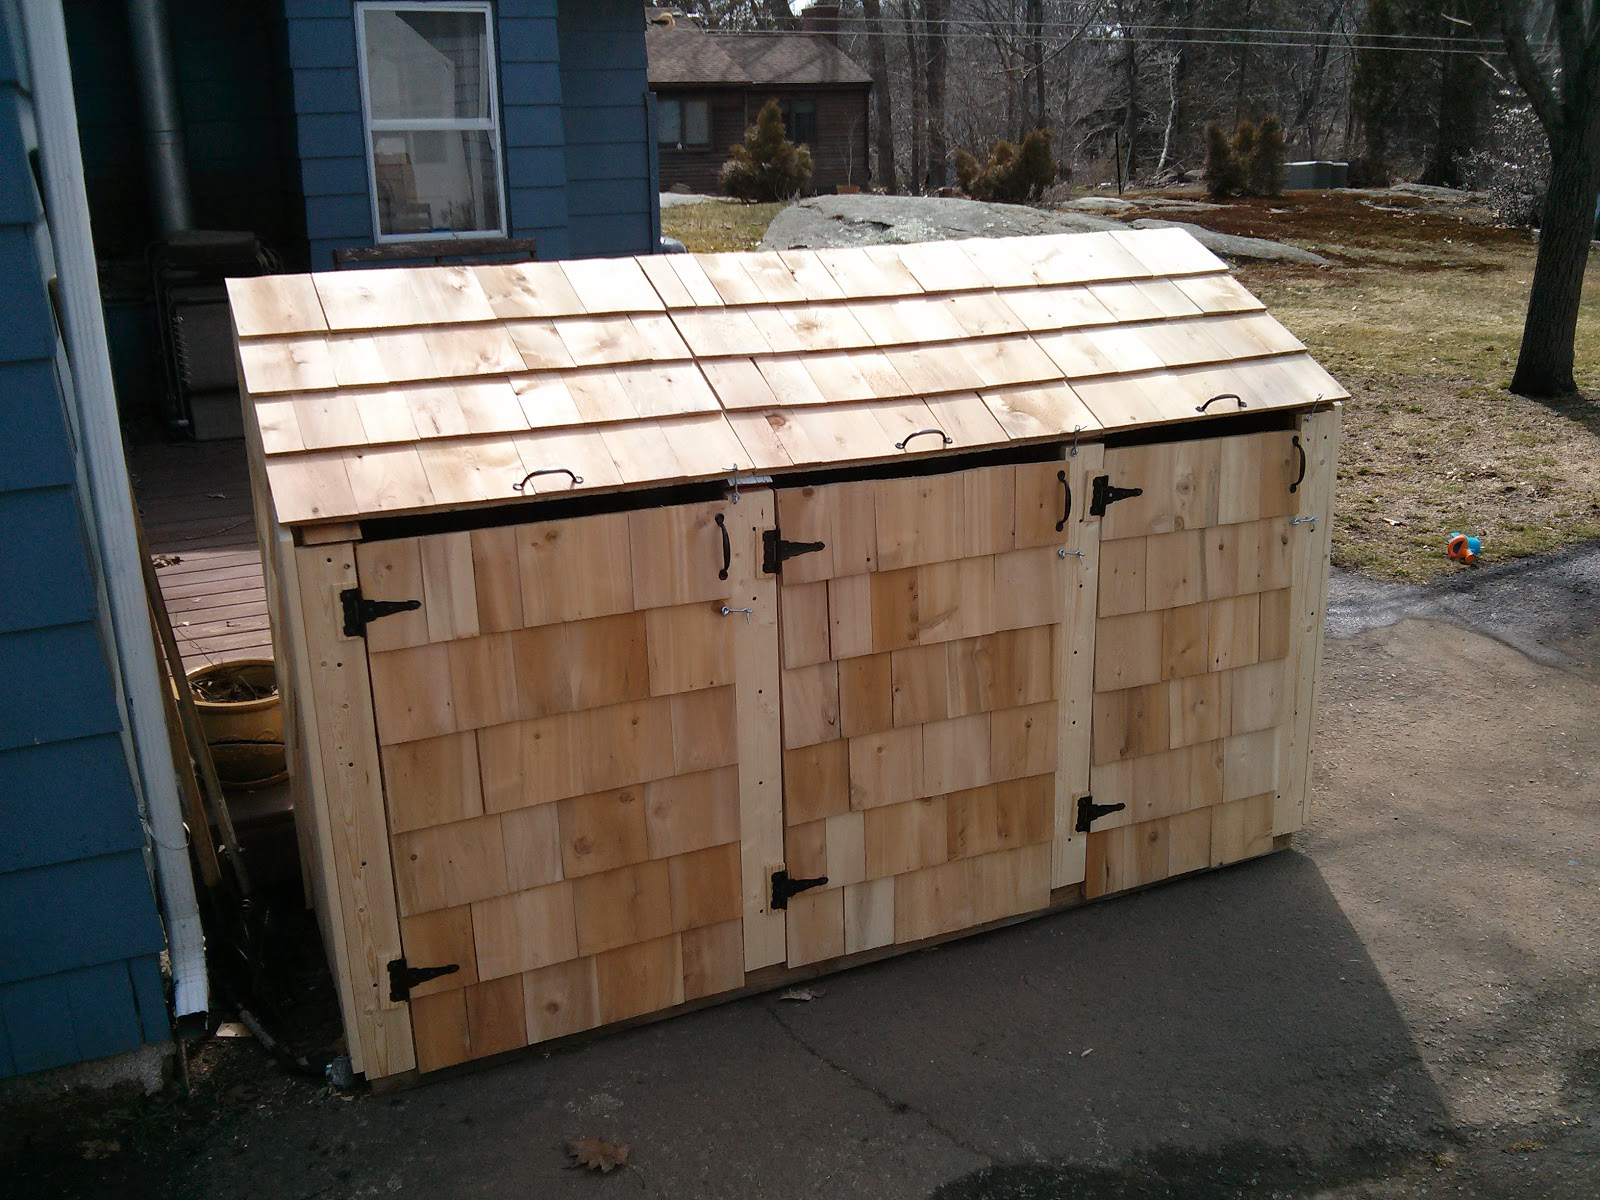 ... And Easy Steps To Build a Garbage Storage Shed | Shed Blueprints